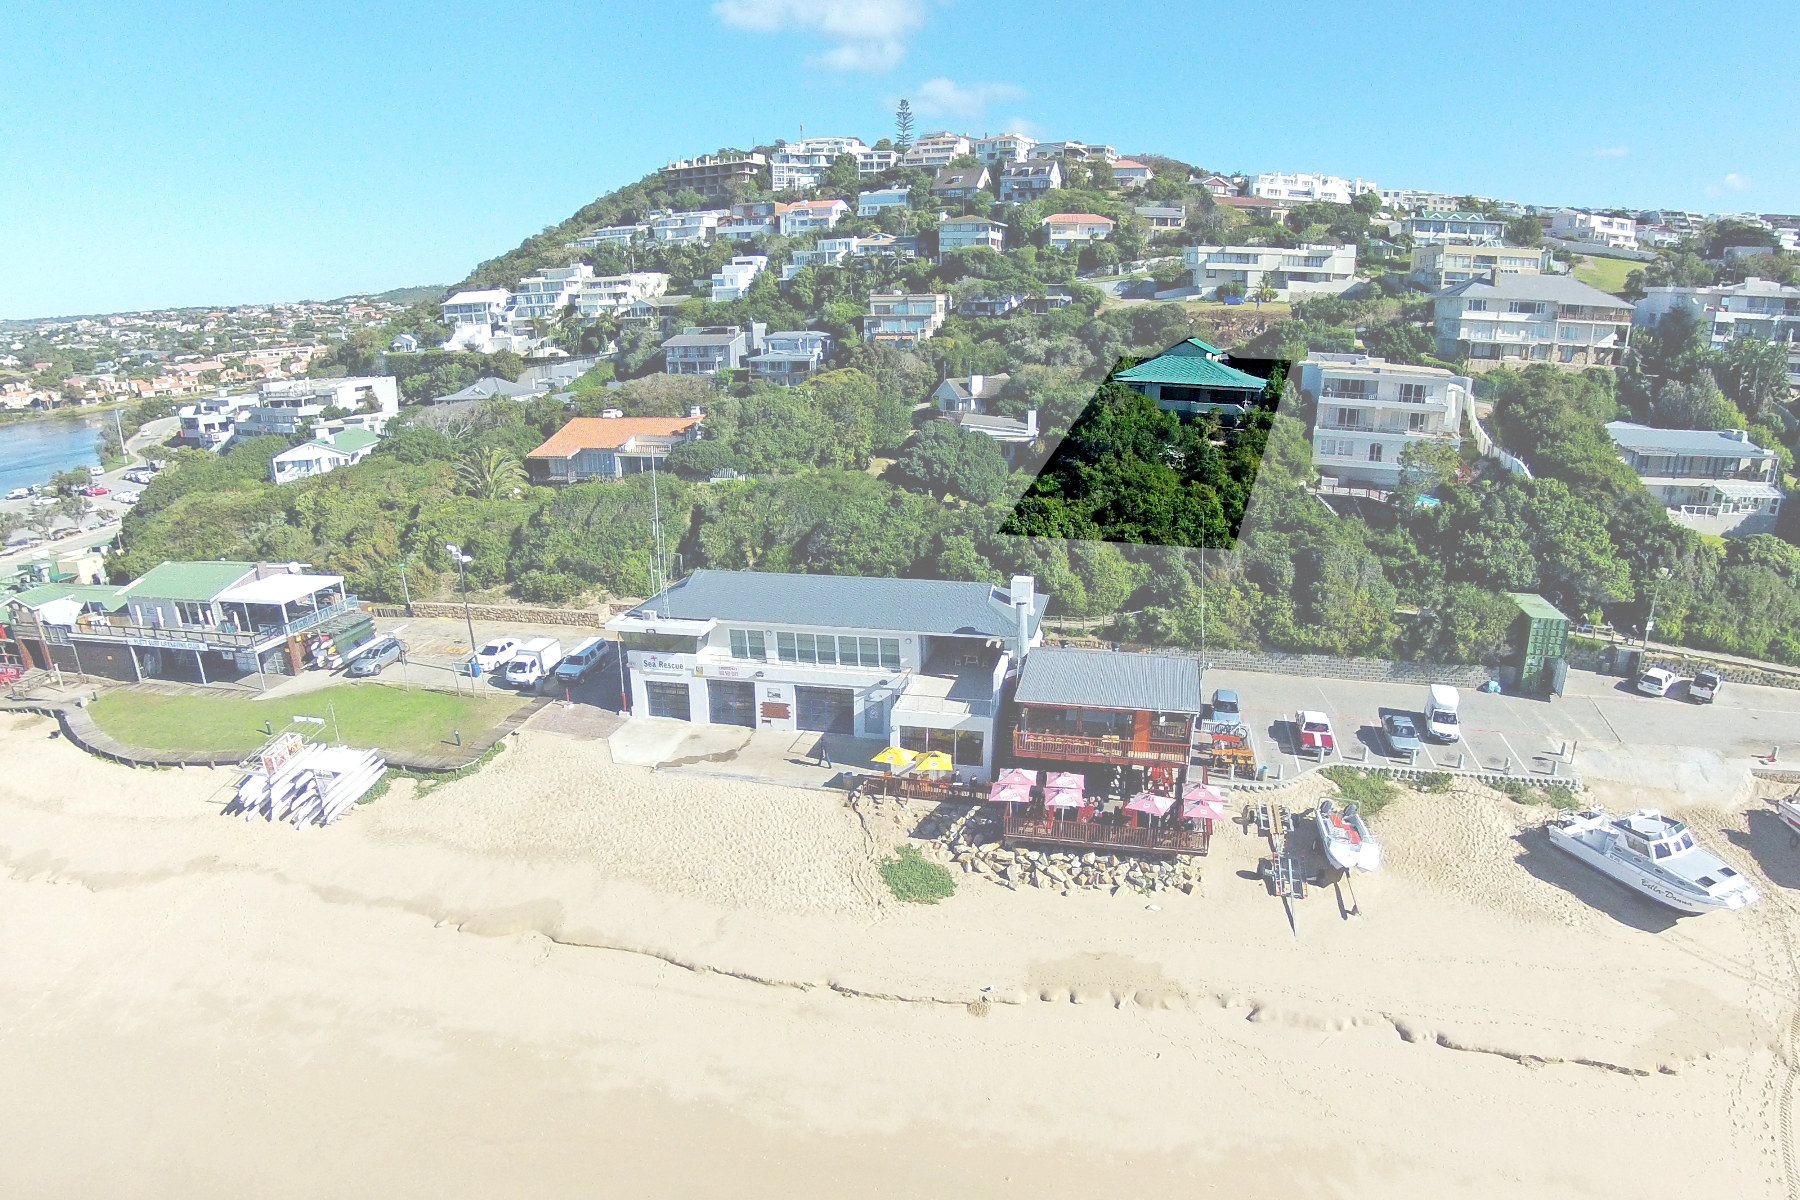 Single Family Home for Sale at In Good Spirits Plettenberg Bay, Western Cape, 6600 South Africa